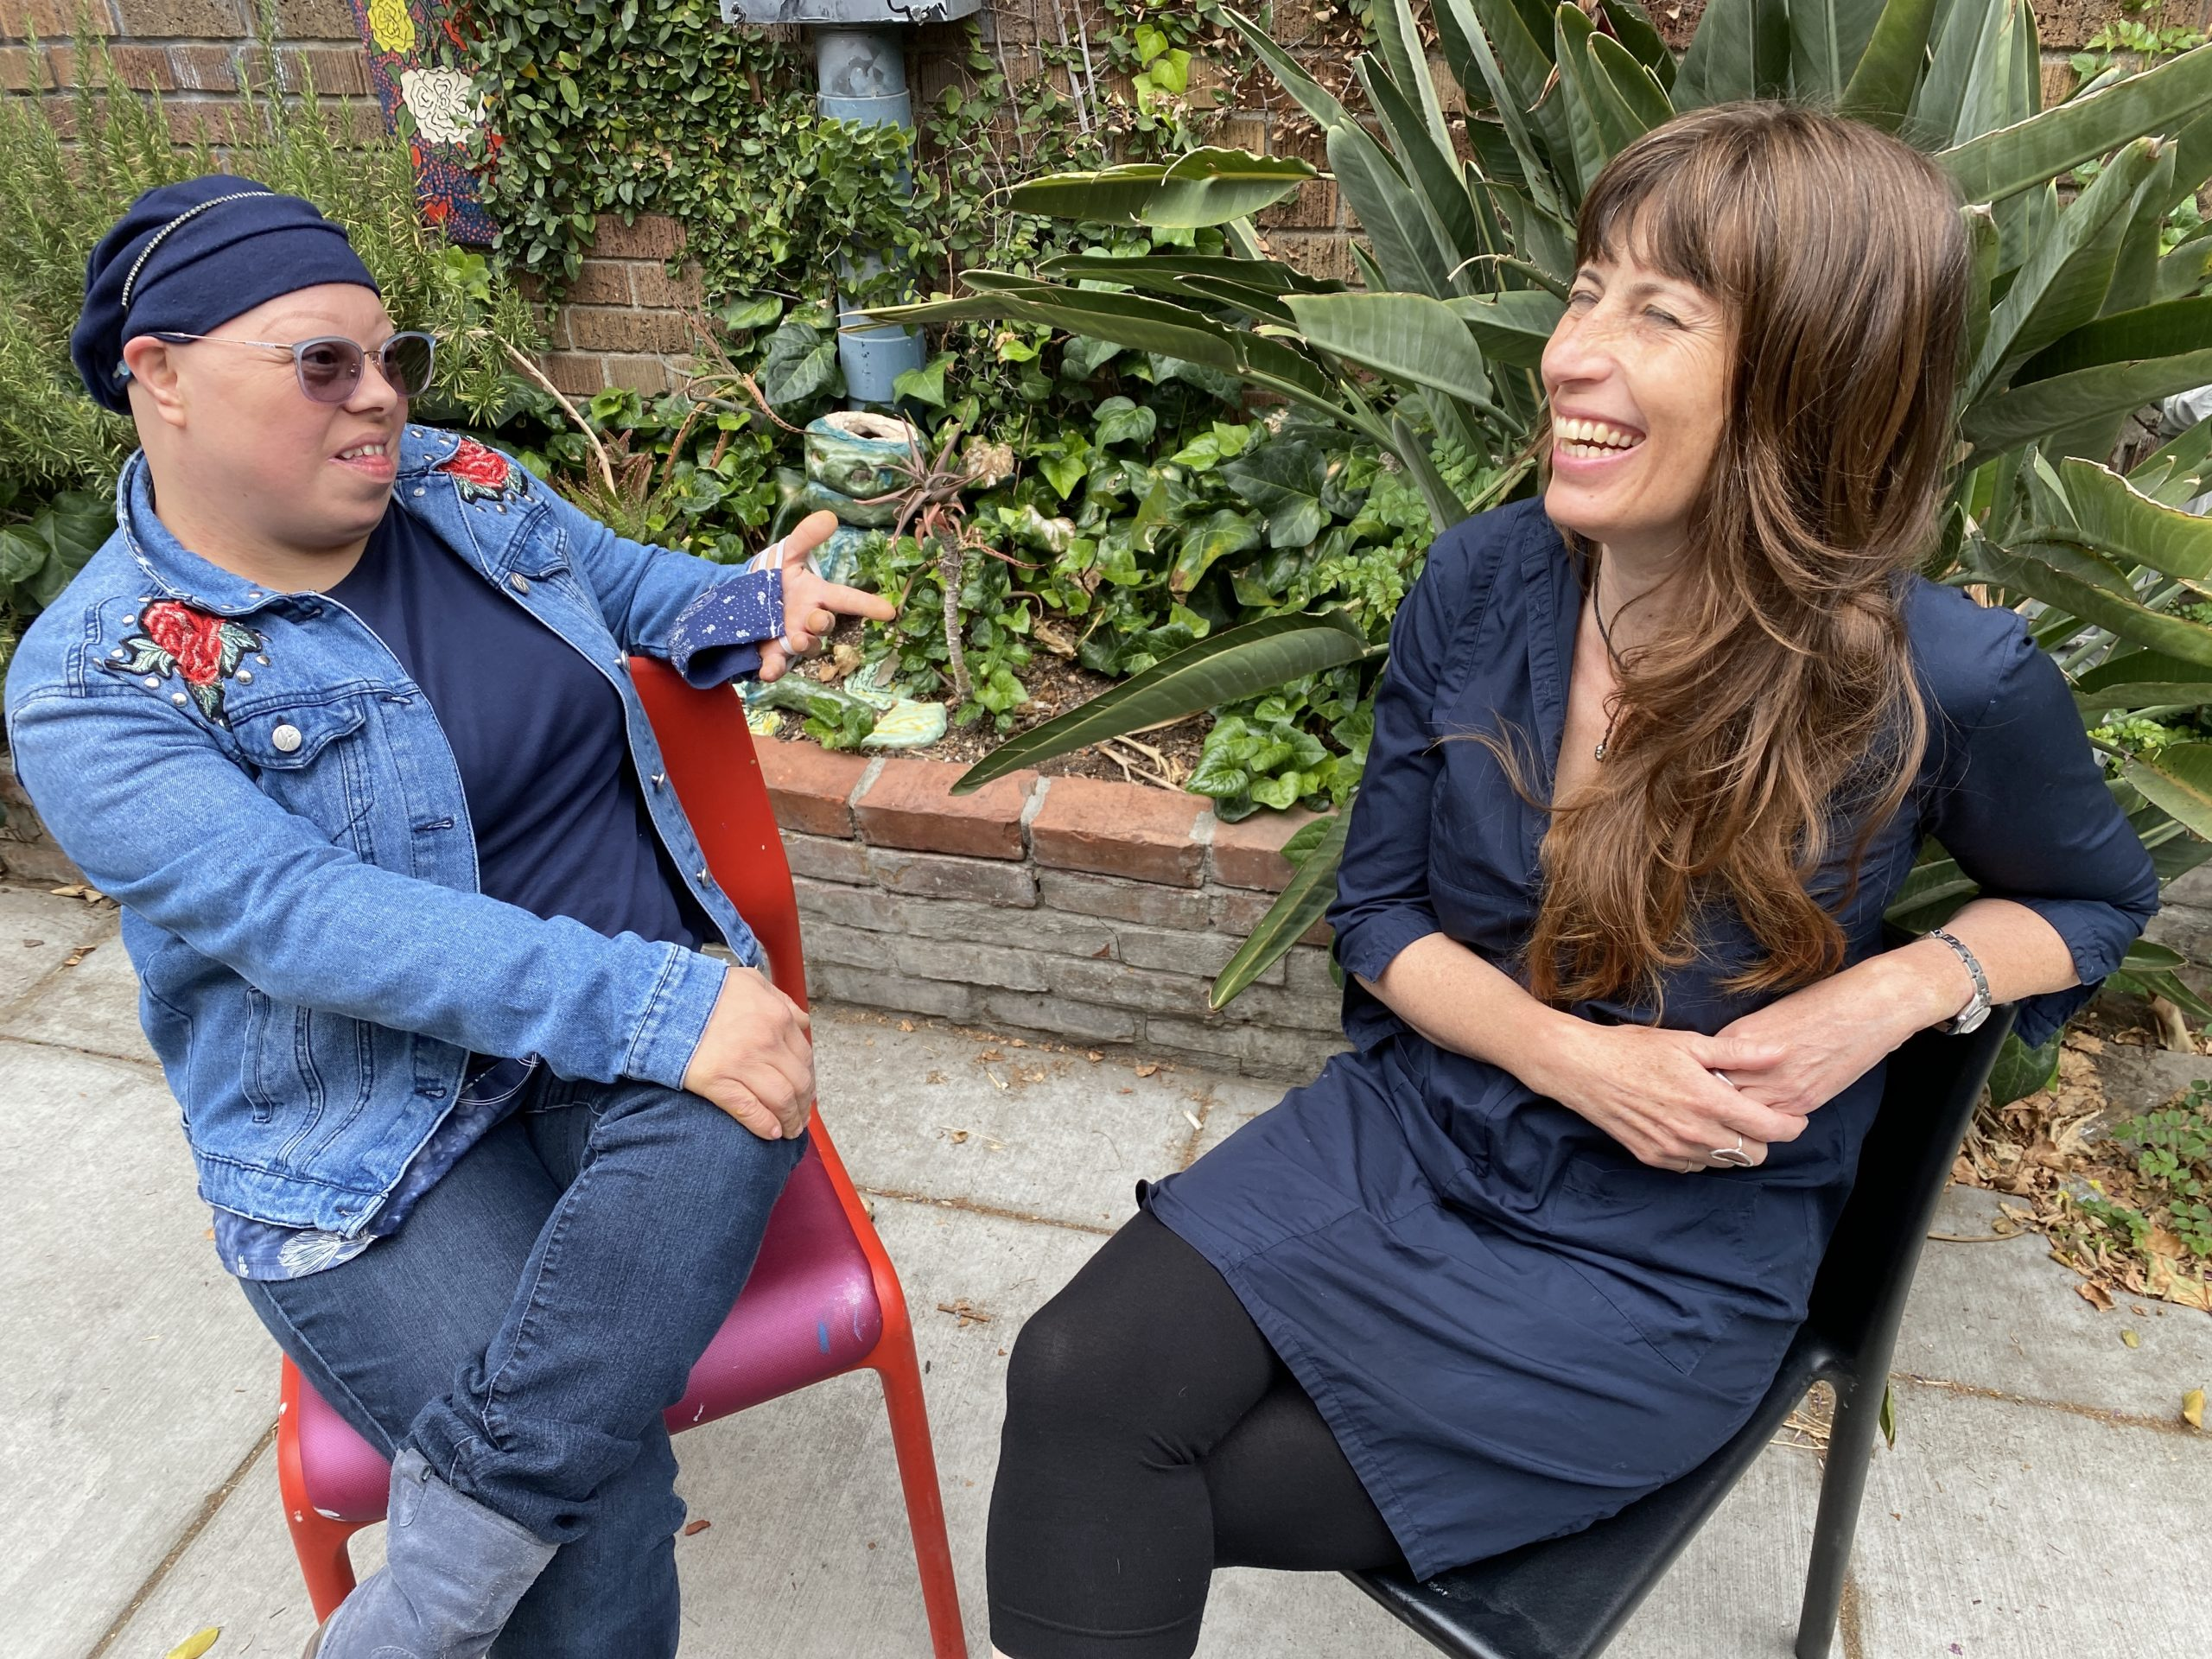 Creative Growth artist and poet Elizabeth Rangel and poet Lorraine Lupo smile as they sit and chat in a garden filled with plants and ceramics outside of a red brick studio building.